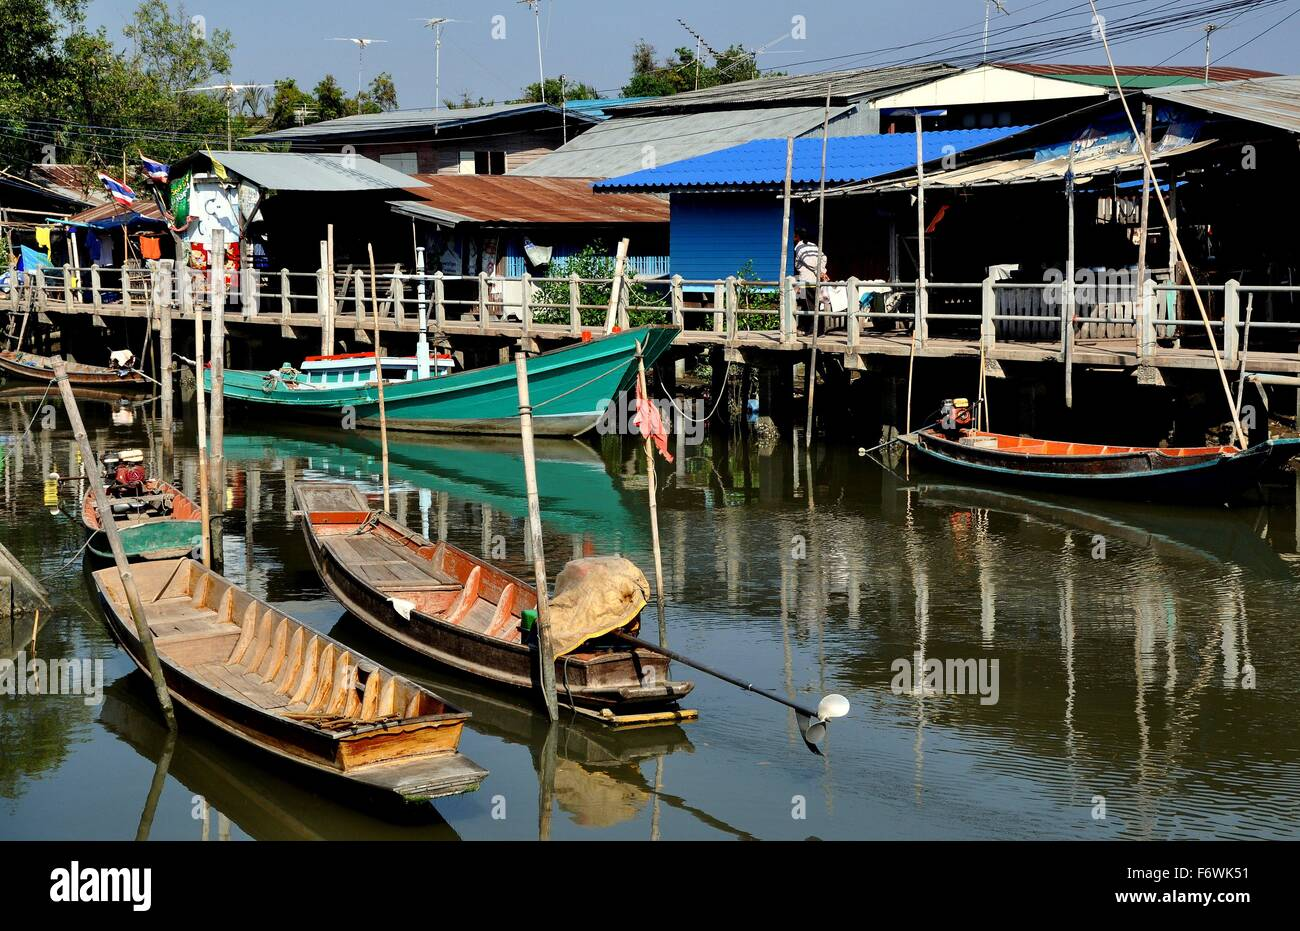 Samut Songkhram:   Old wooden fishing boats docked in front of a cluster of Thai houses at a small fishing village - Stock Image